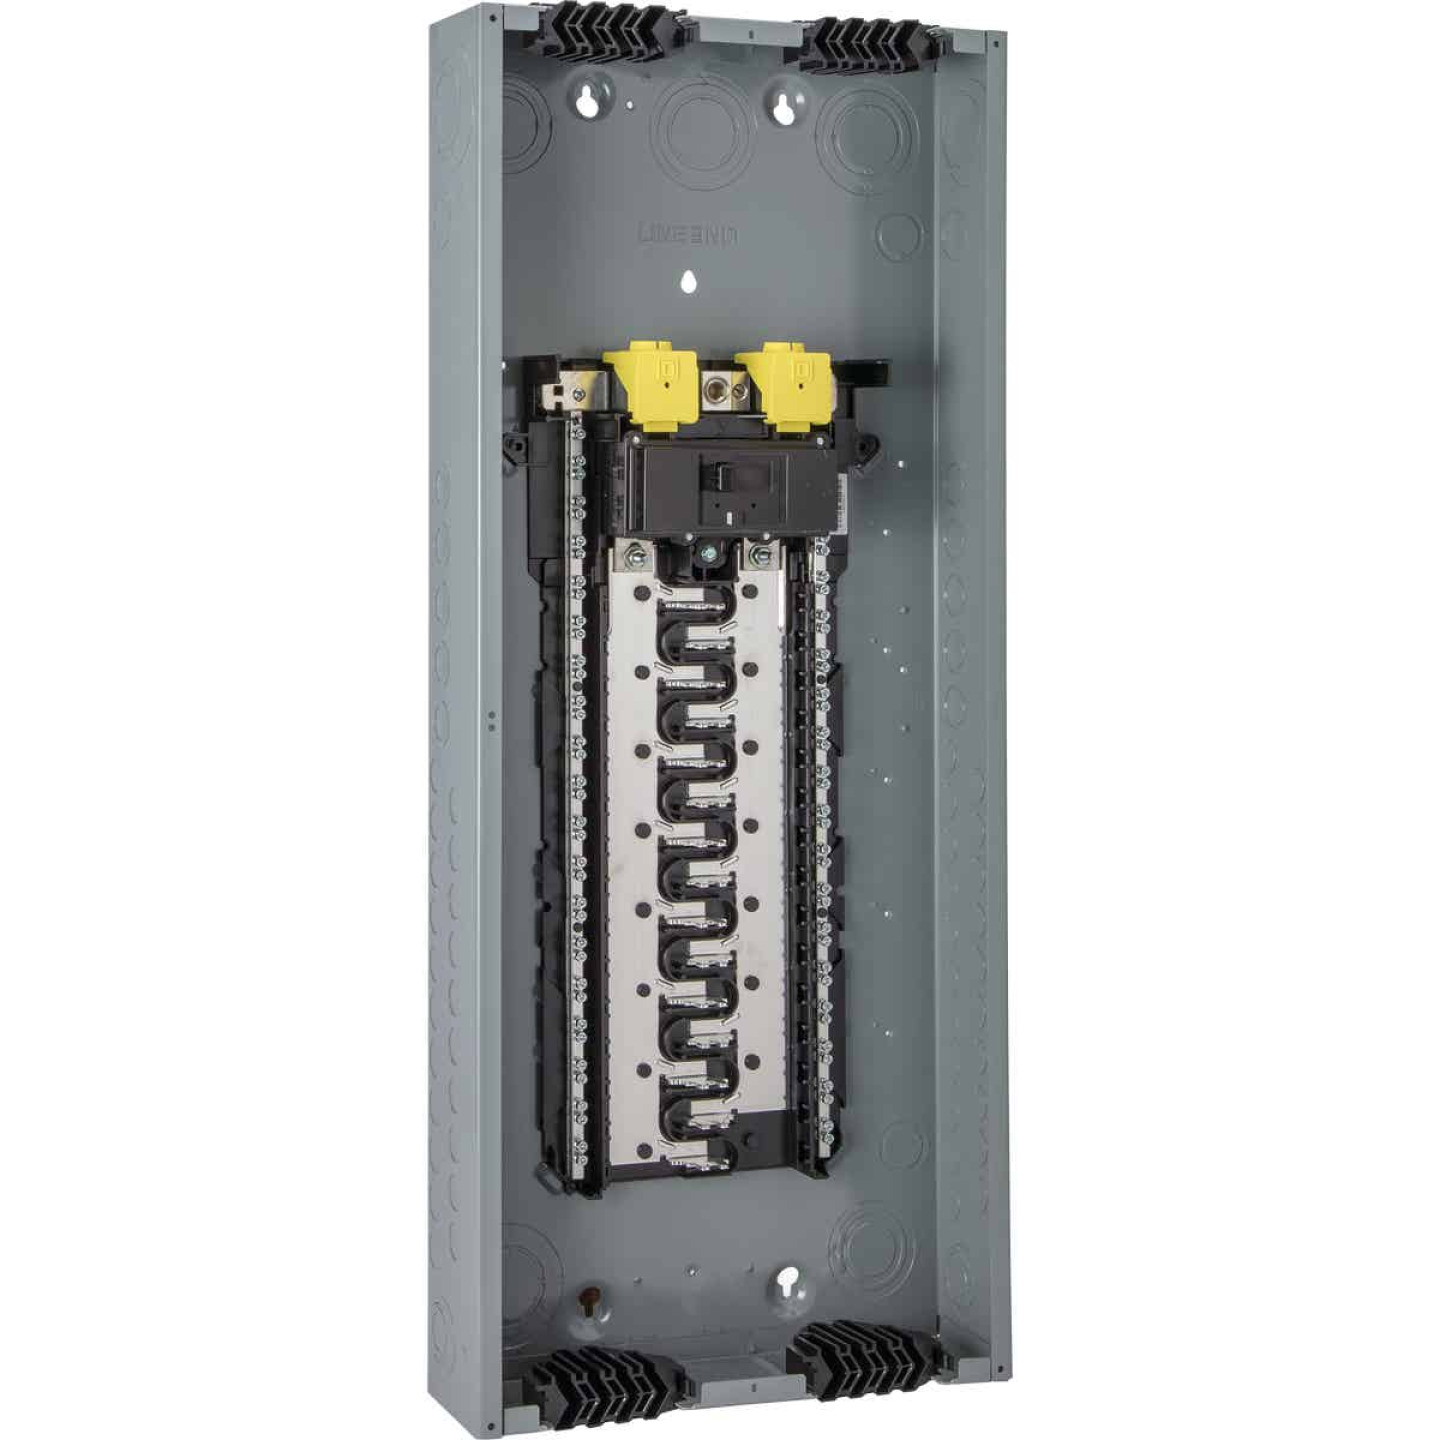 Square D Homeline Qwik-Grip 200A 60-Circuit 30-Space Indoor Main Breaker Plug-On Neutral Load Center Image 1